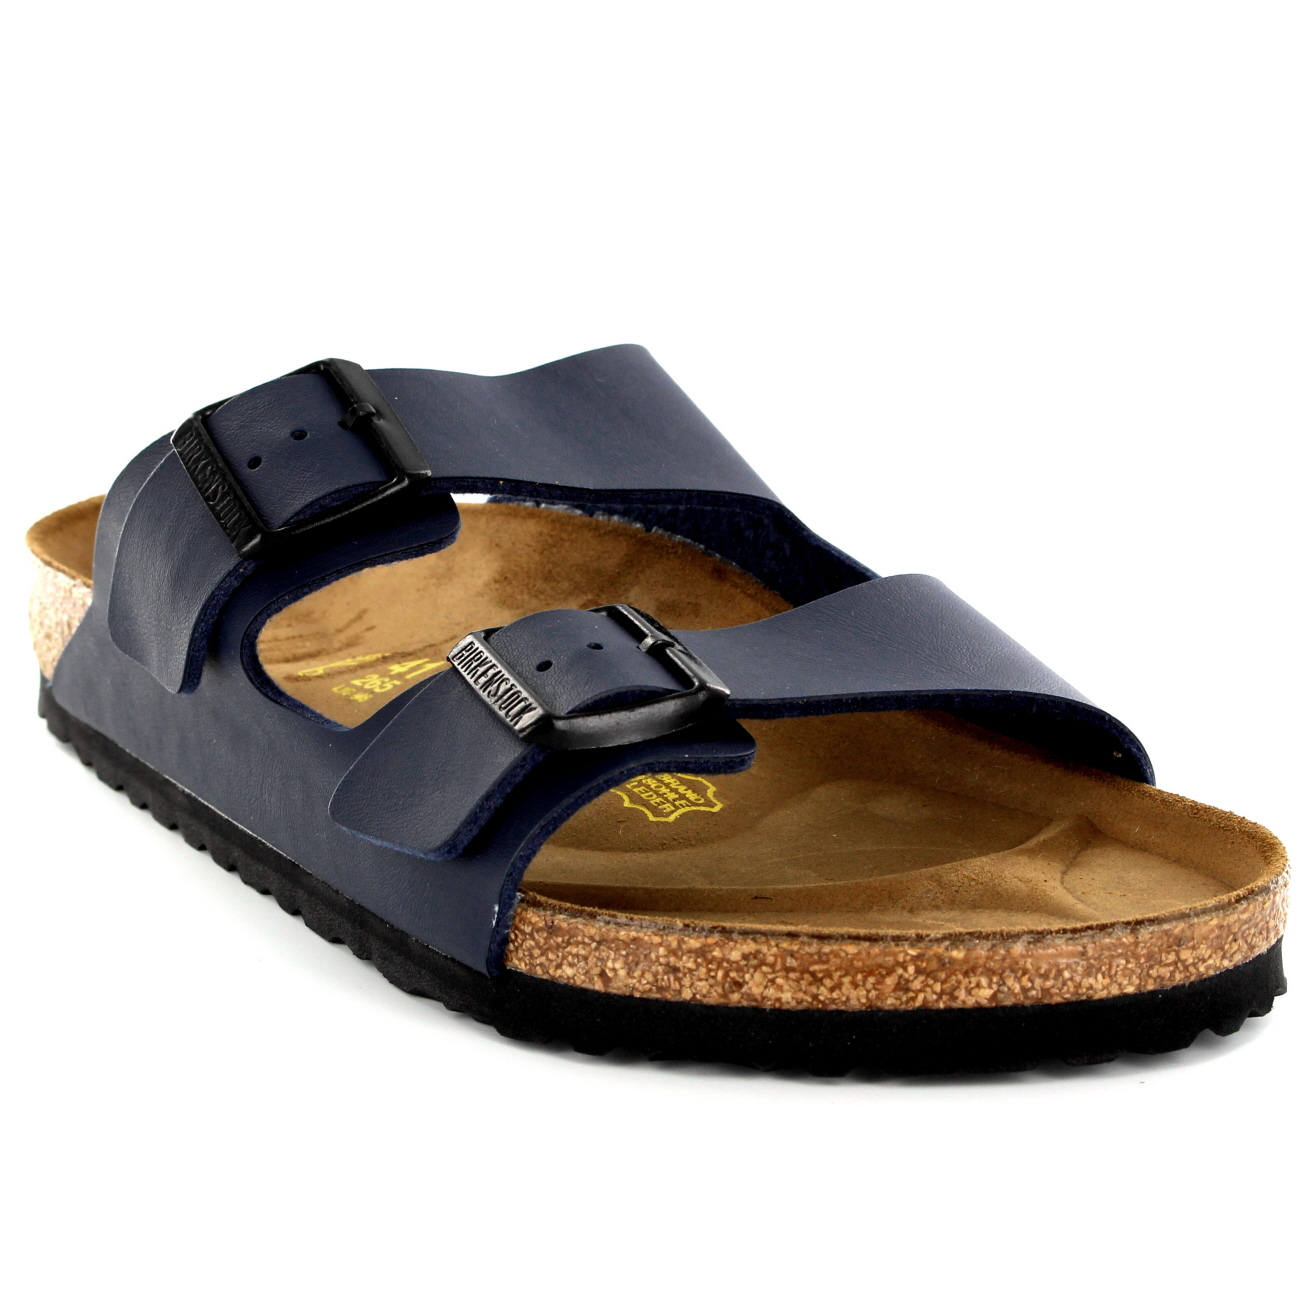 Details about Mens Birkenstock Arizona Leather Buckle Summer Holiday Beach Sandals UK 6 13